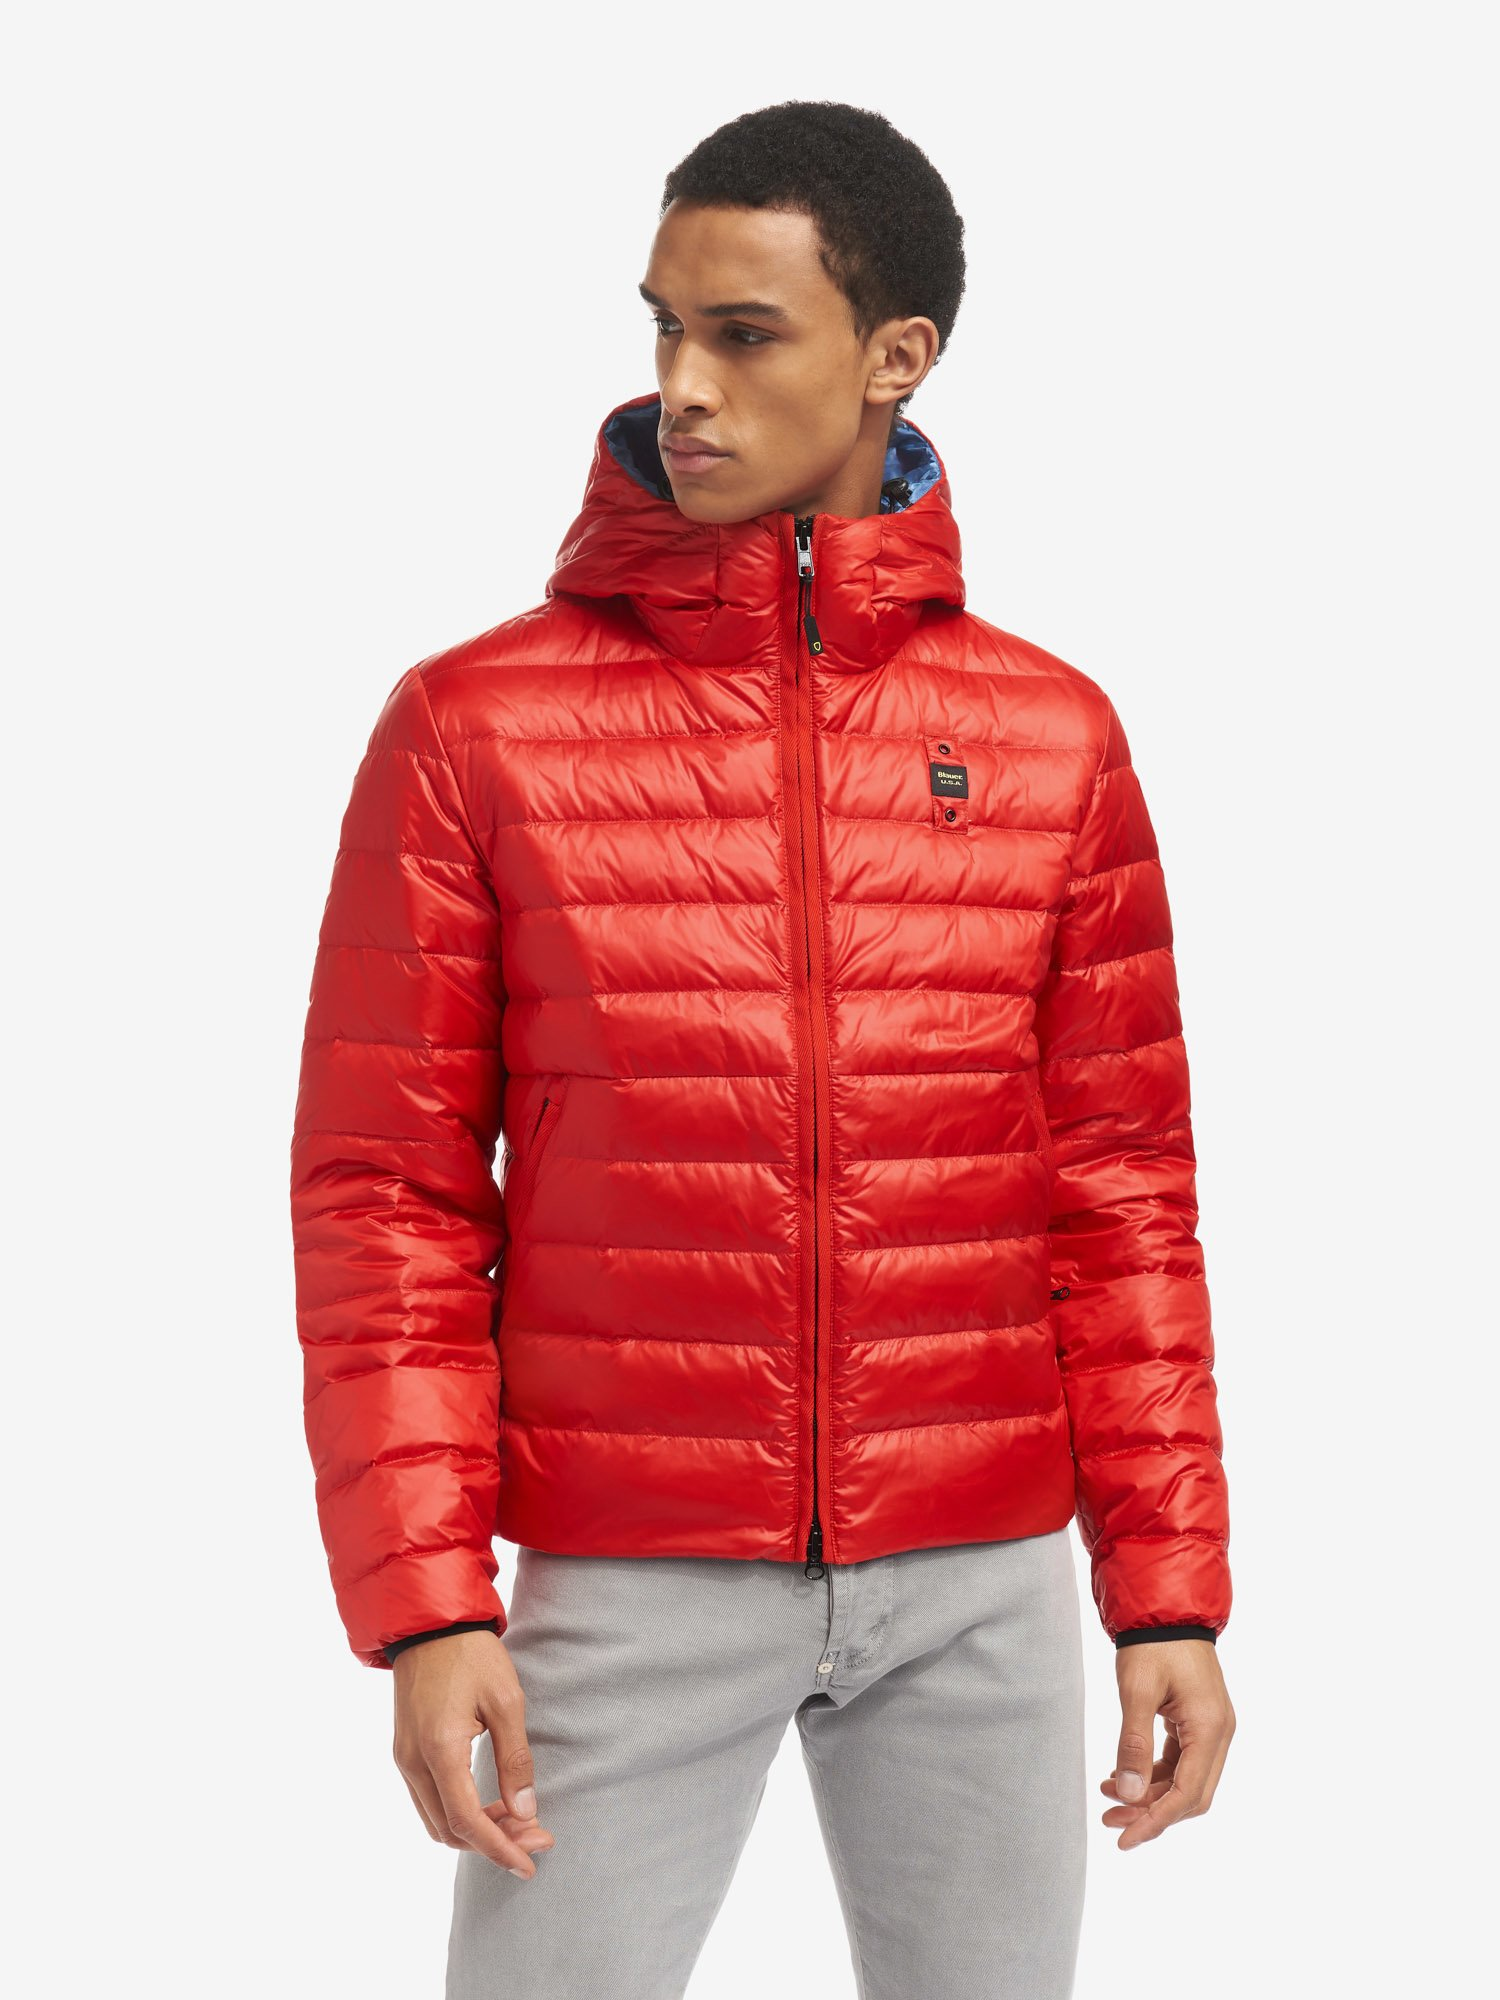 Blauer - JACOB SHINY STRIPED DOWN JACKET WITH HOOD - Bright Red - Blauer